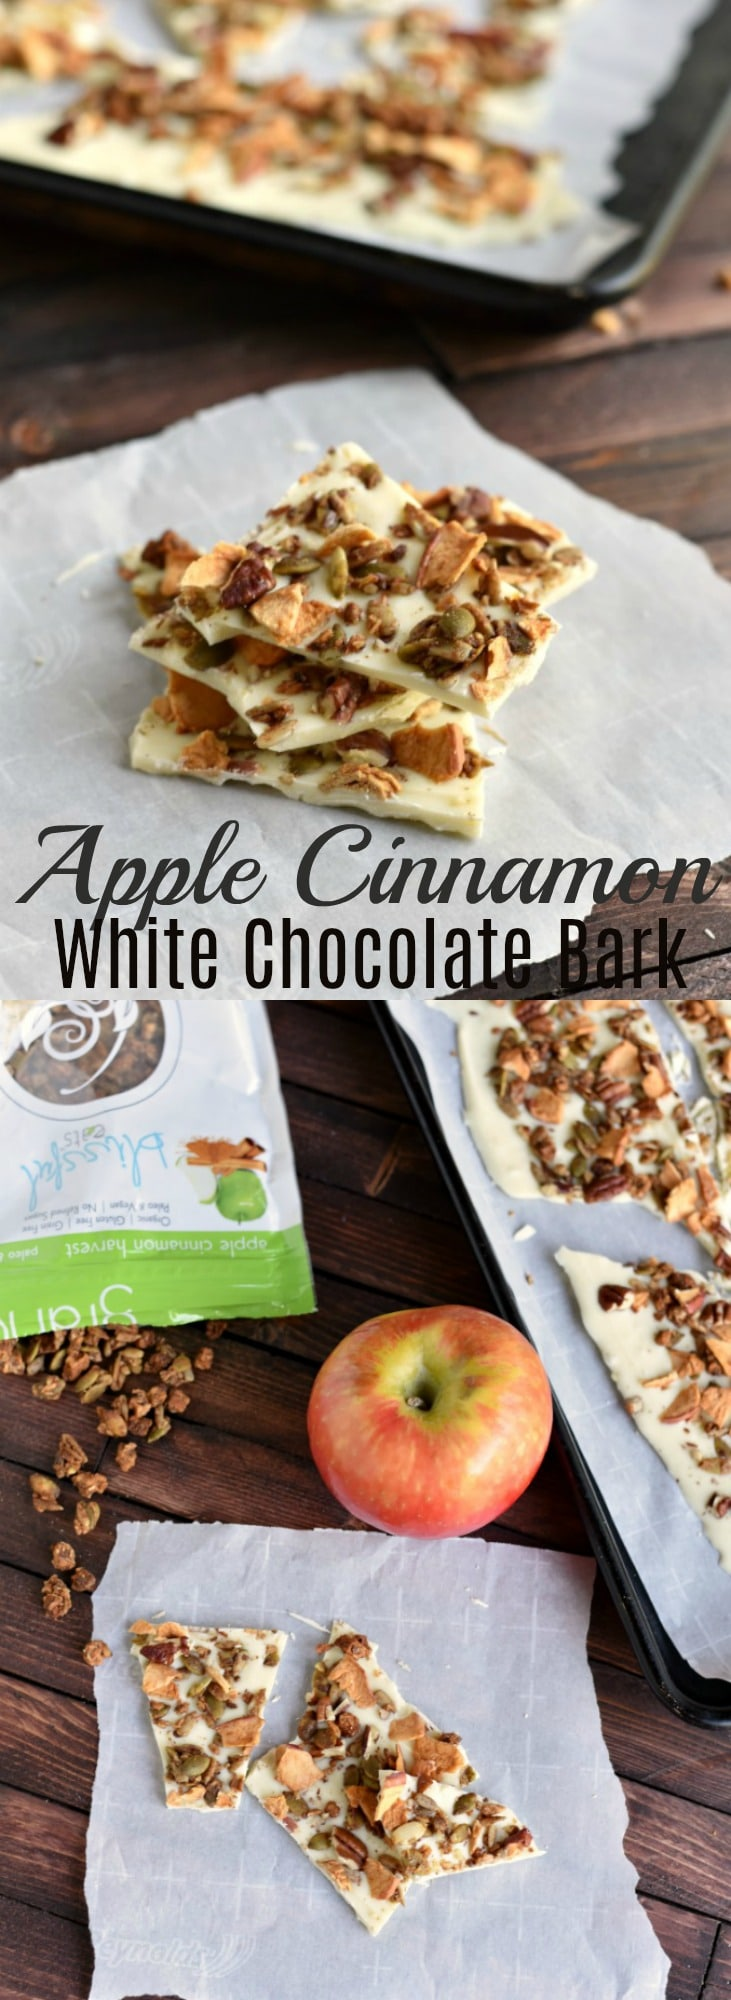 This easy apple cinnamon white chocolate bark is studded with crisp dried apples, apple cinnamon granola and chopped pecans. It makes a perfect fall treat! 